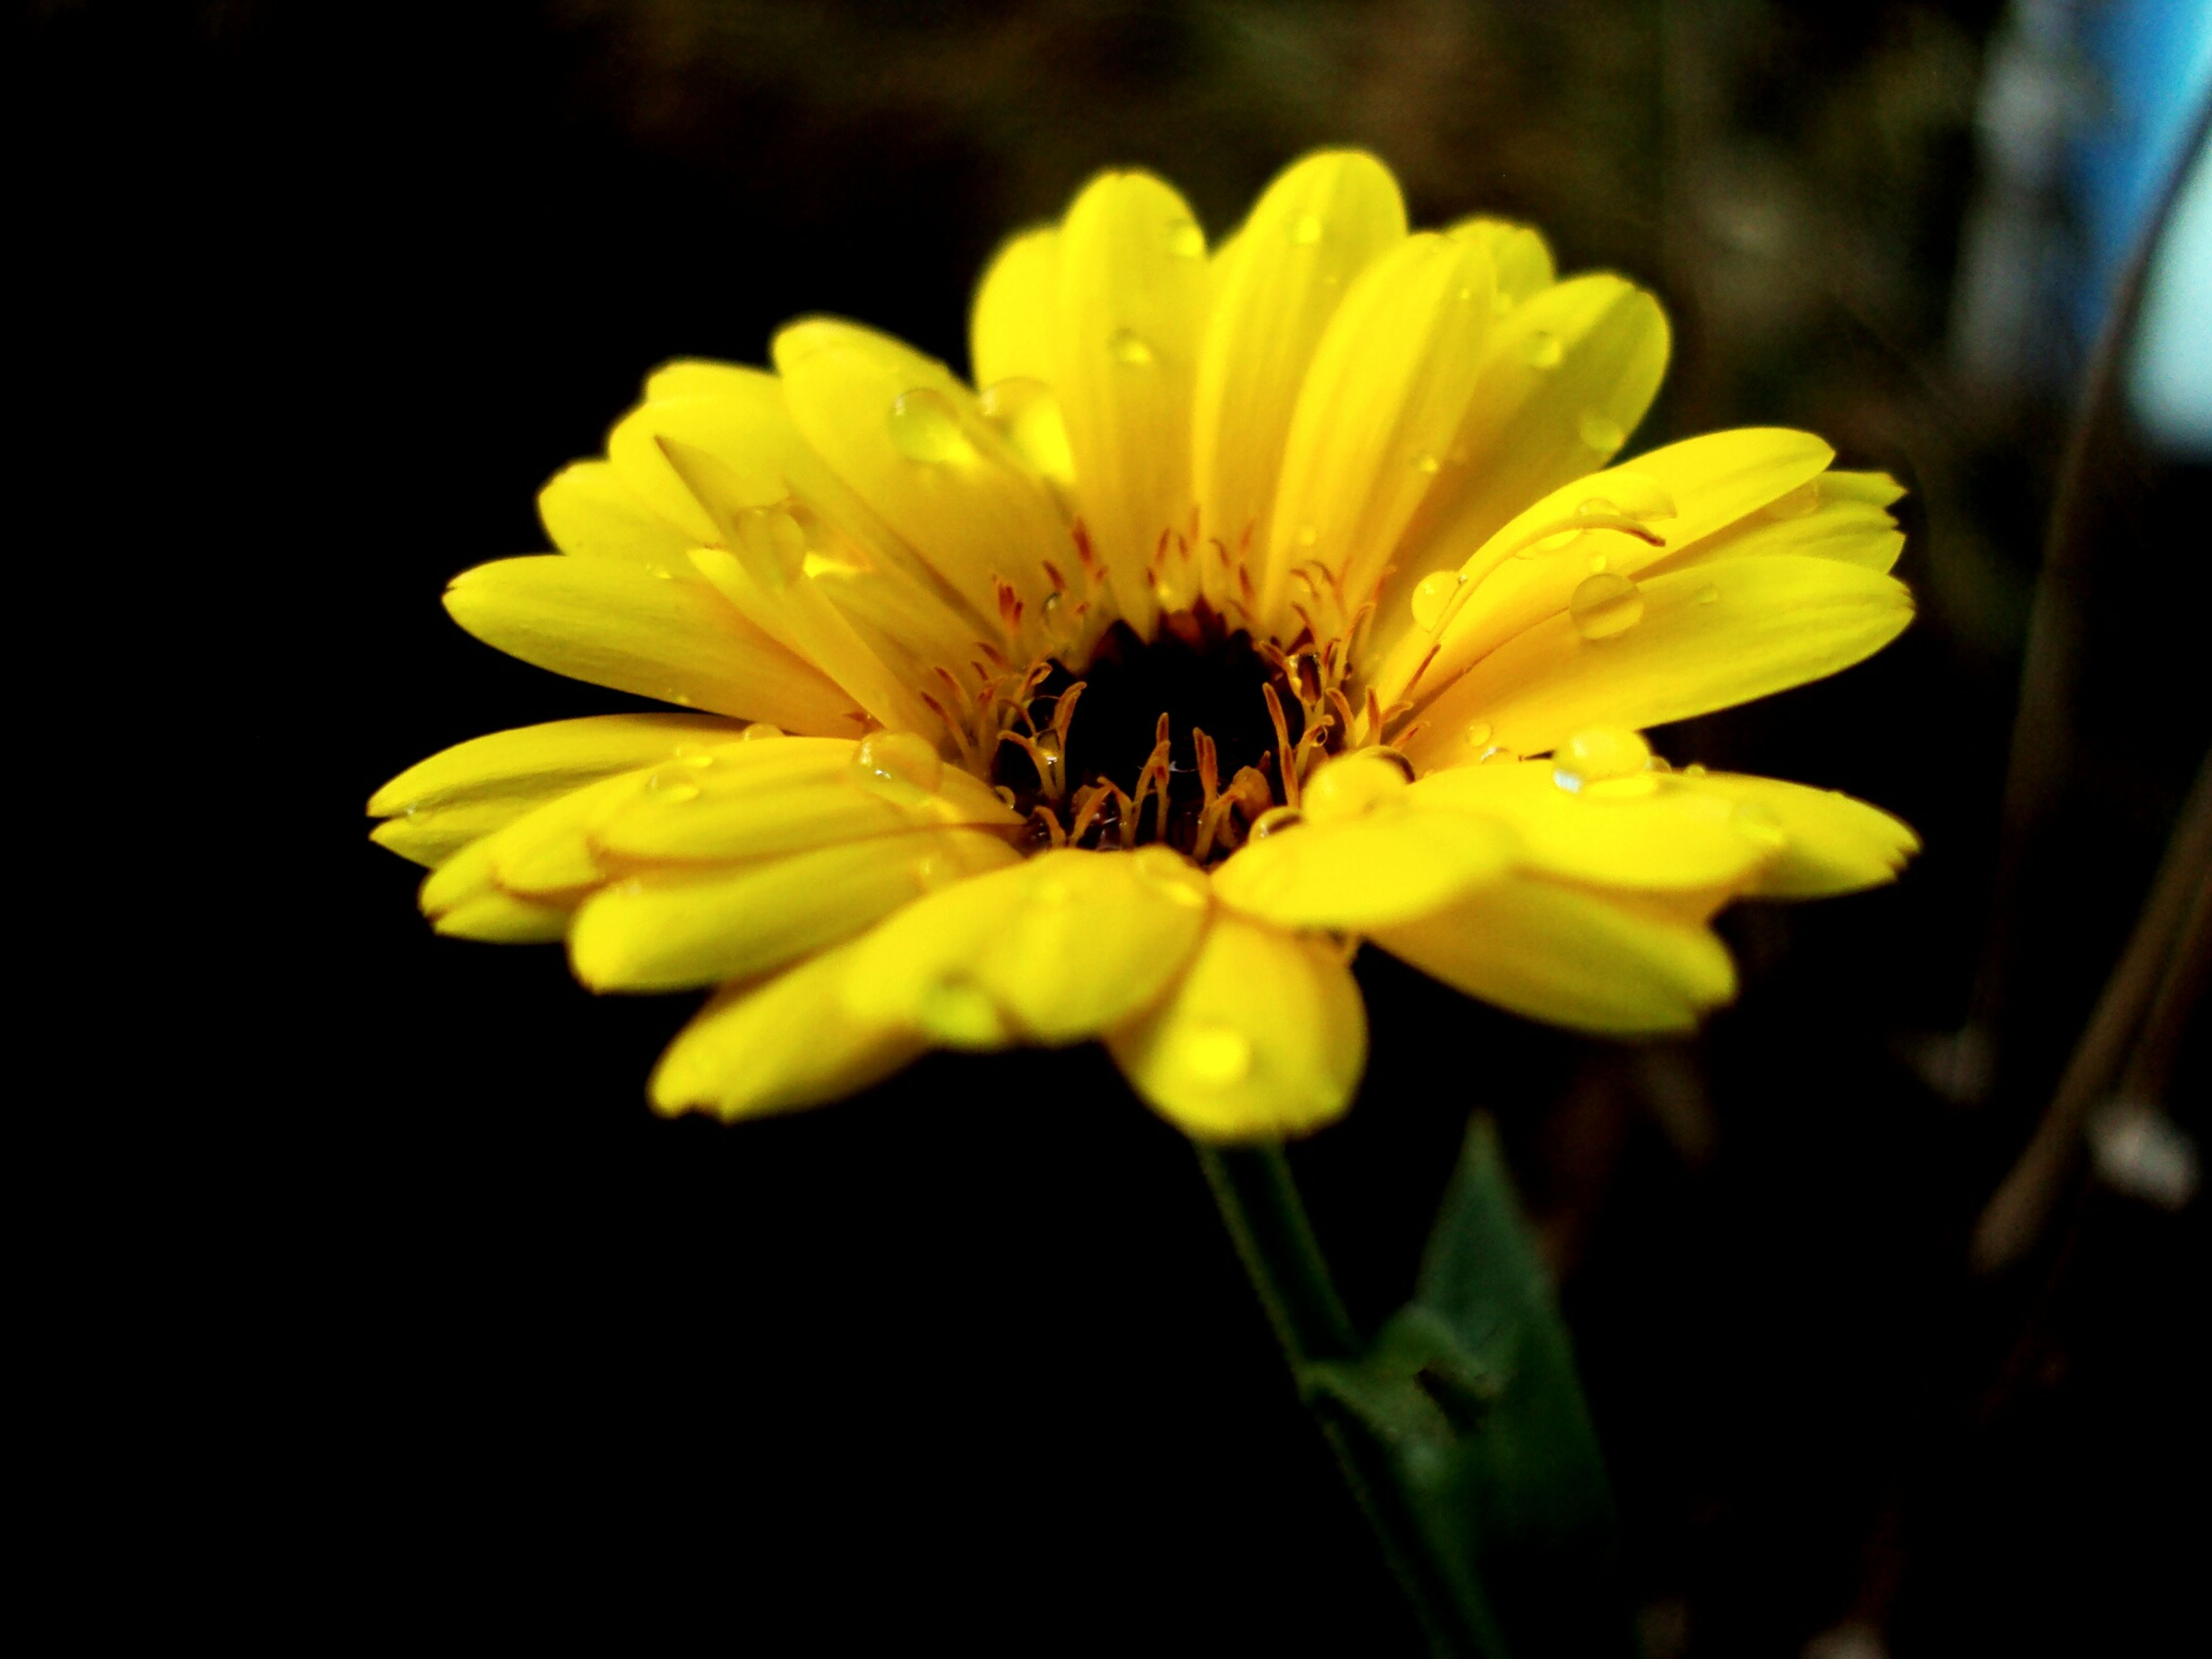 petal, fragility, flower, freshness, flower head, yellow, close-up, growth, beauty in nature, season, single flower, stem, in bloom, springtime, nature, blossom, vibrant color, daisy, selective focus, focus on foreground, water, dew, botany, day, blooming, pollen, softness, no people, focus